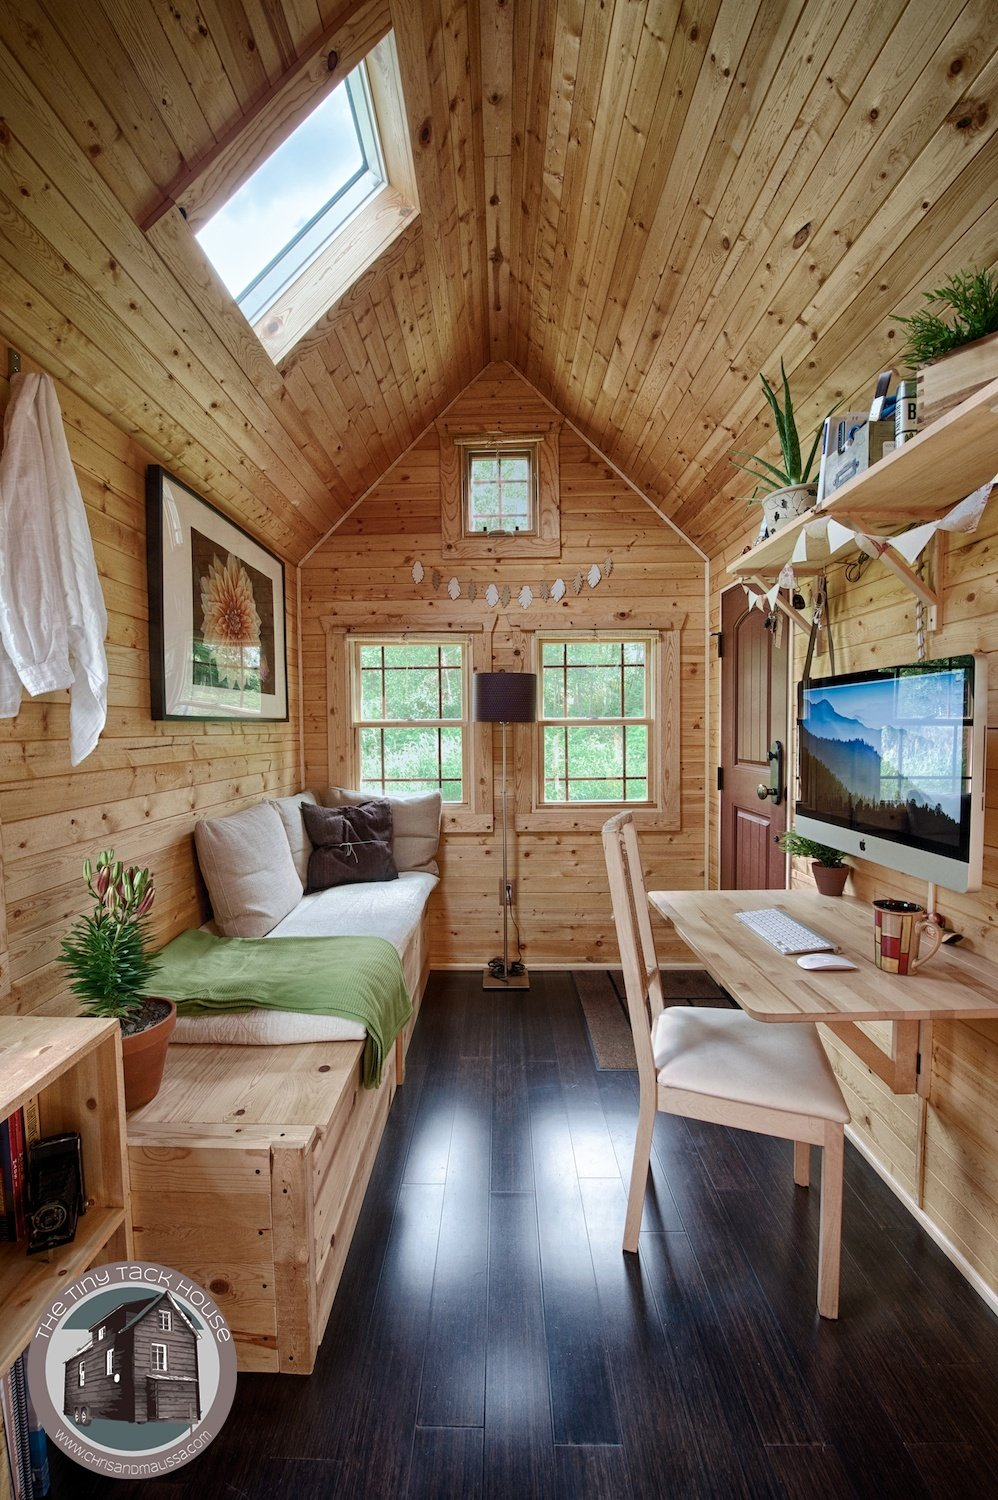 Tiny House Interior 16 tiny houses you wish you could live in